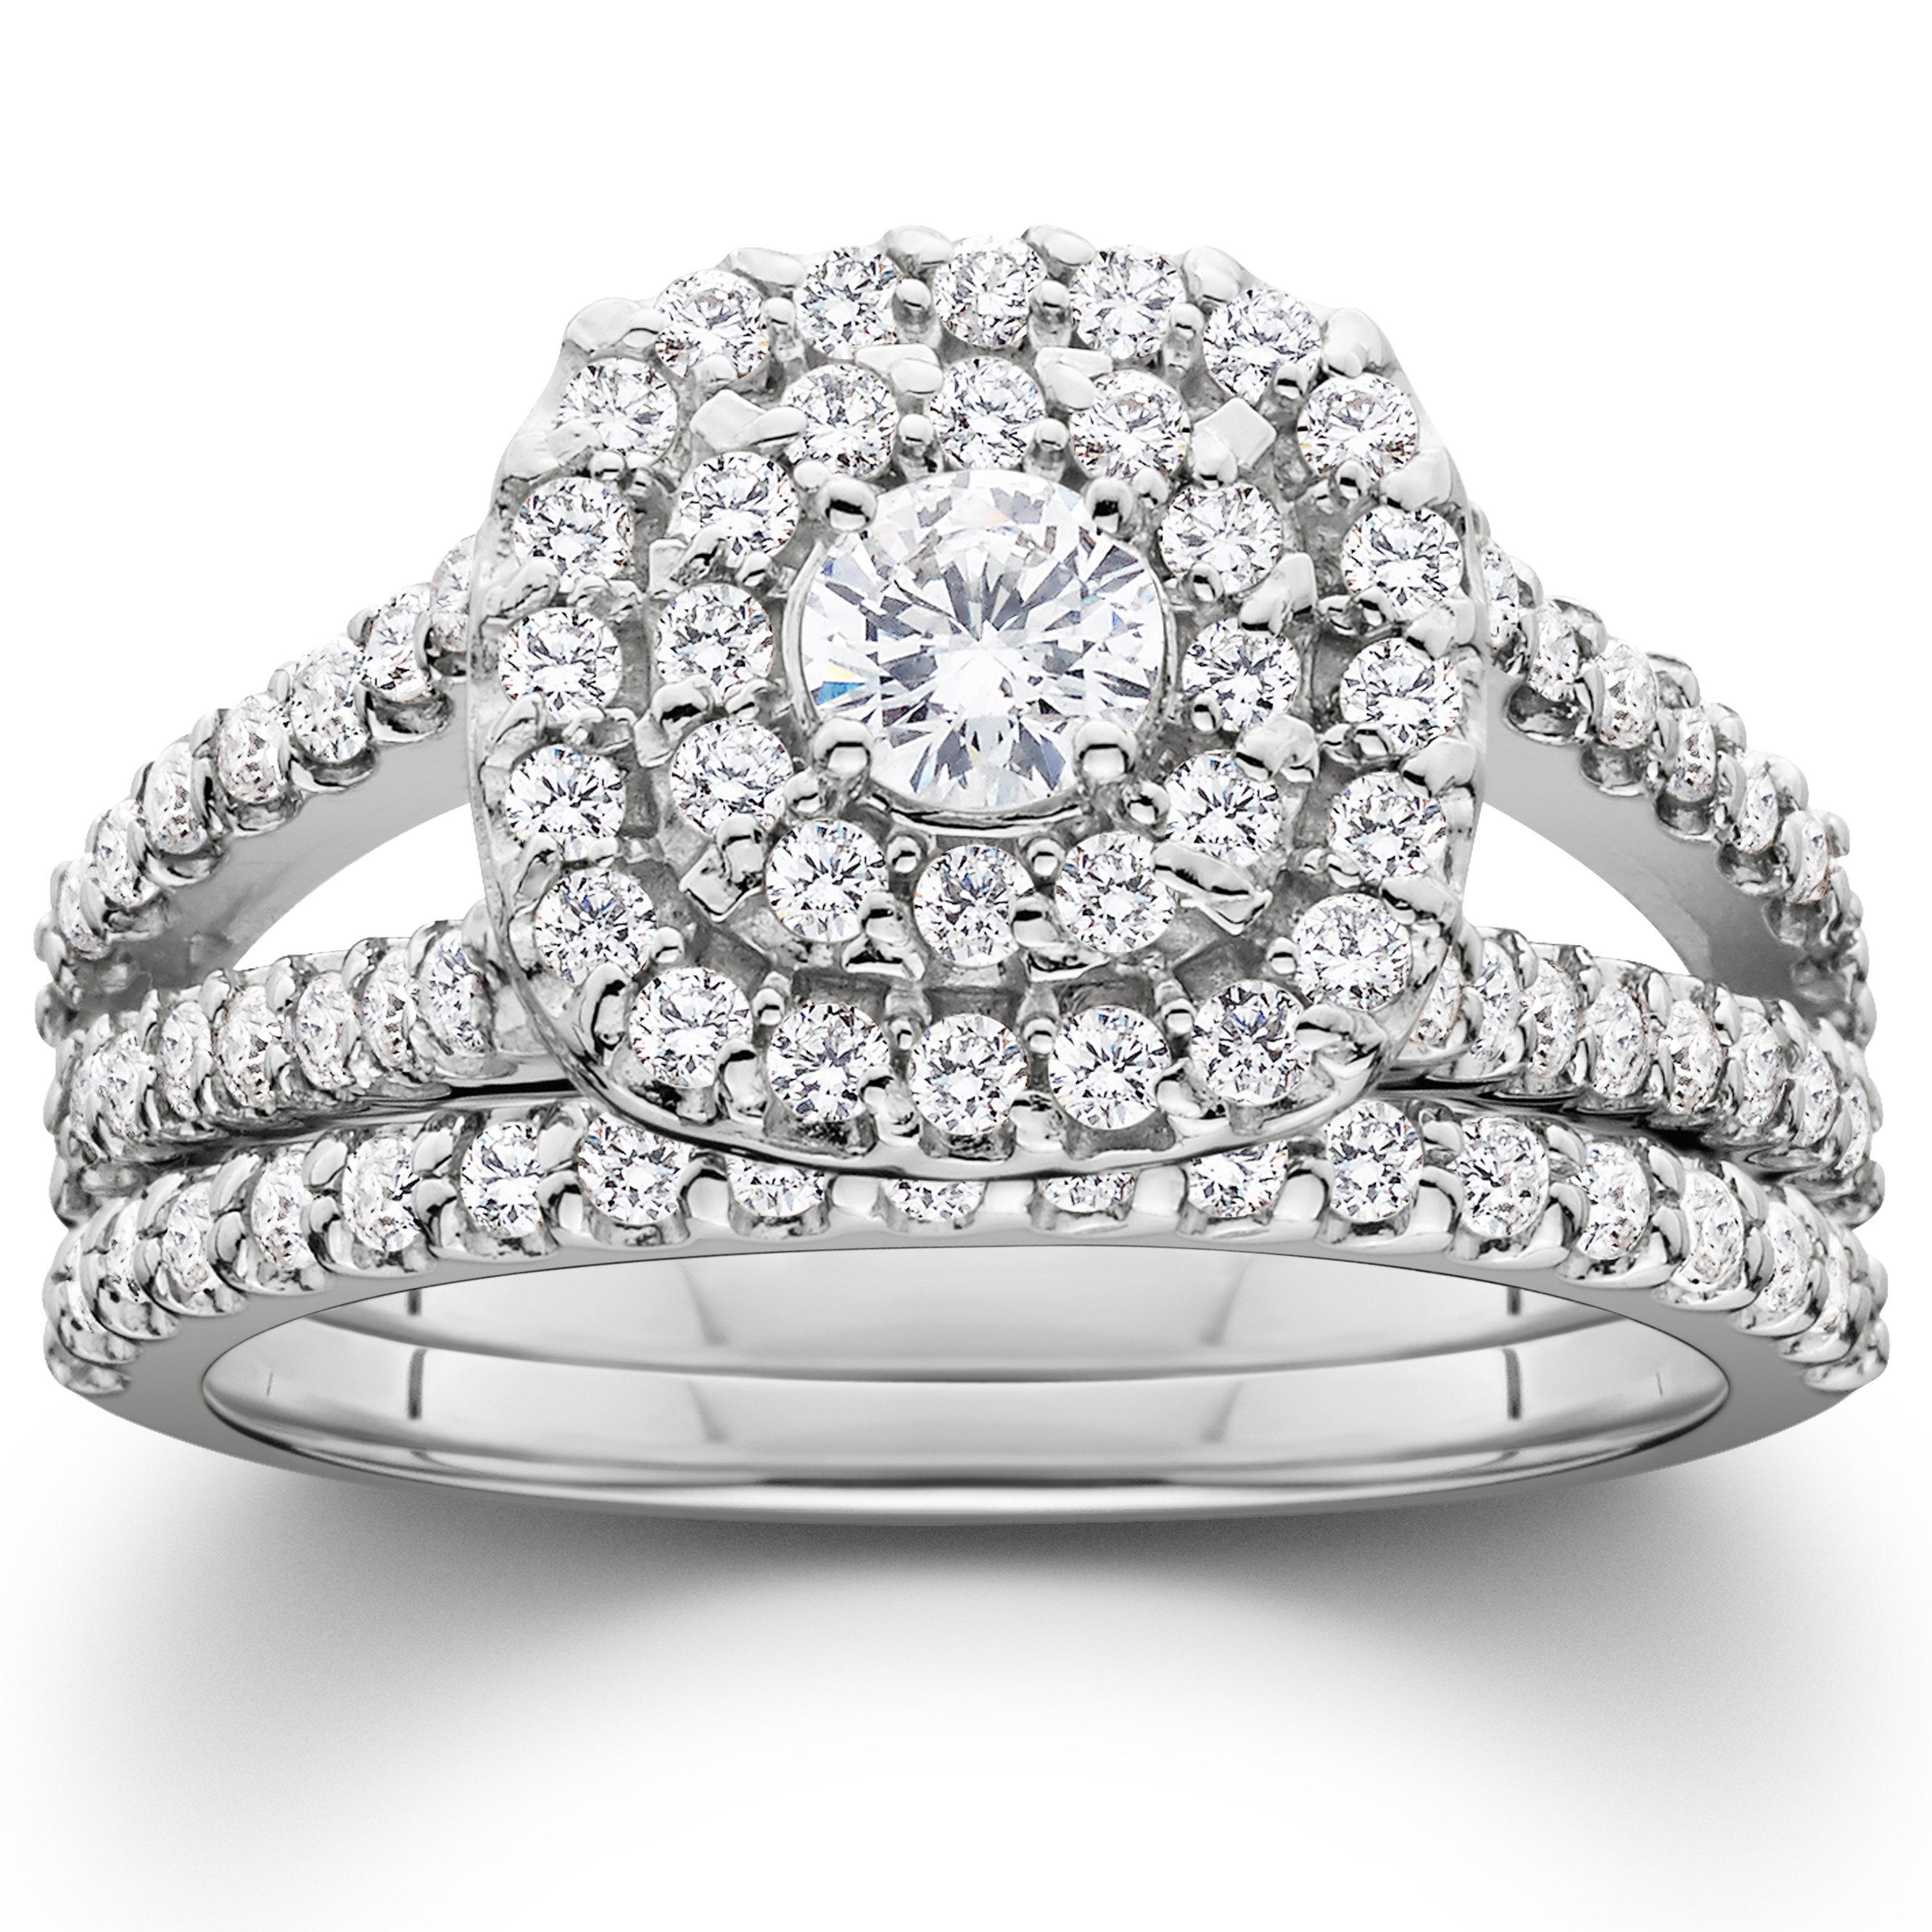 w engagement en silver ip sterling carat ring halo miabella wedding cubic t canada tgw rings zirconia g walmart